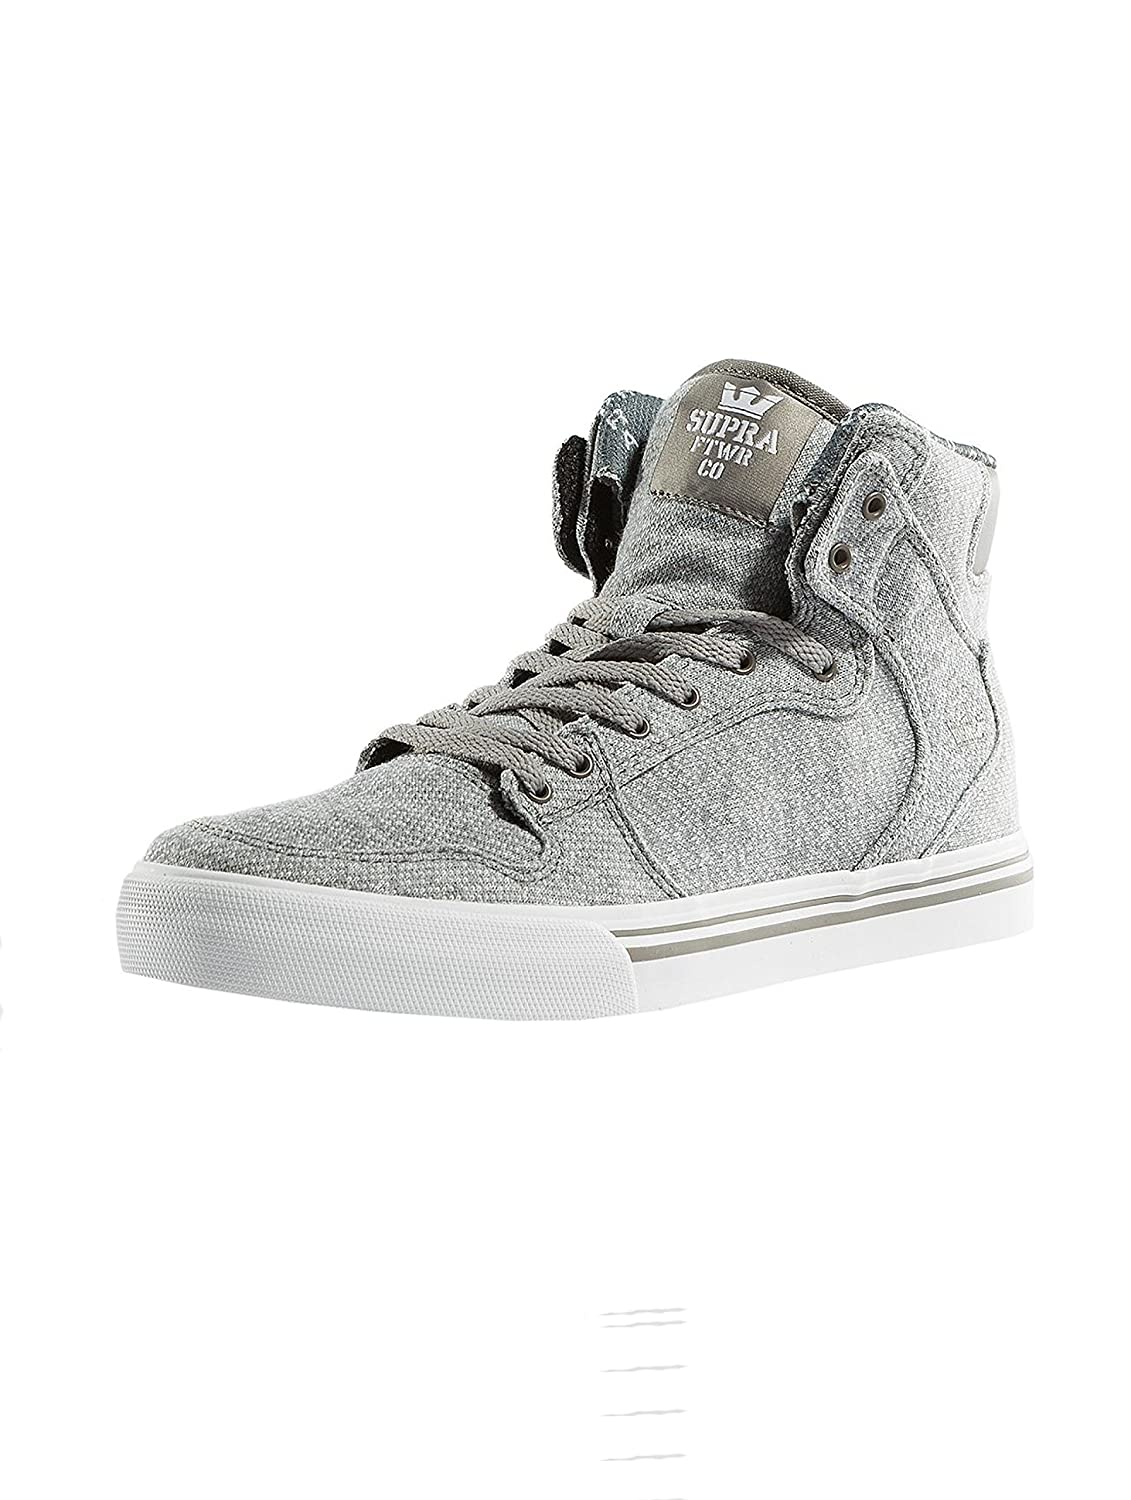 Supra Mens Skytop III Shoes 11 Little Kid M|Grey French Terry Textile/White